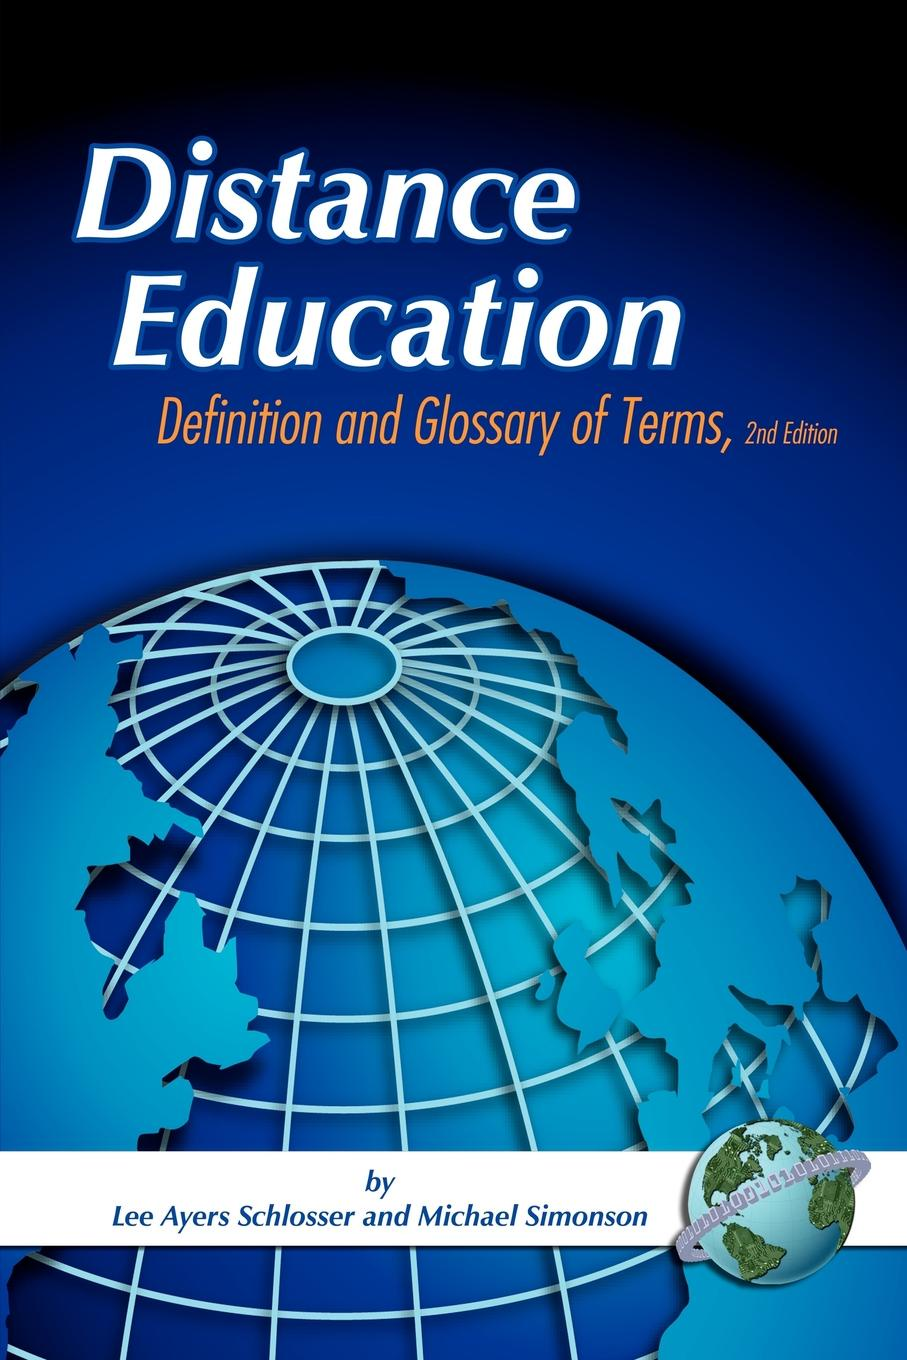 Lee Ayers Schlosser, Michael Simonson Distance Education. Definitions Glossary of Terms (Second Edition) (PB) cross national information and communication technology policies and practices in education revised second edition pb